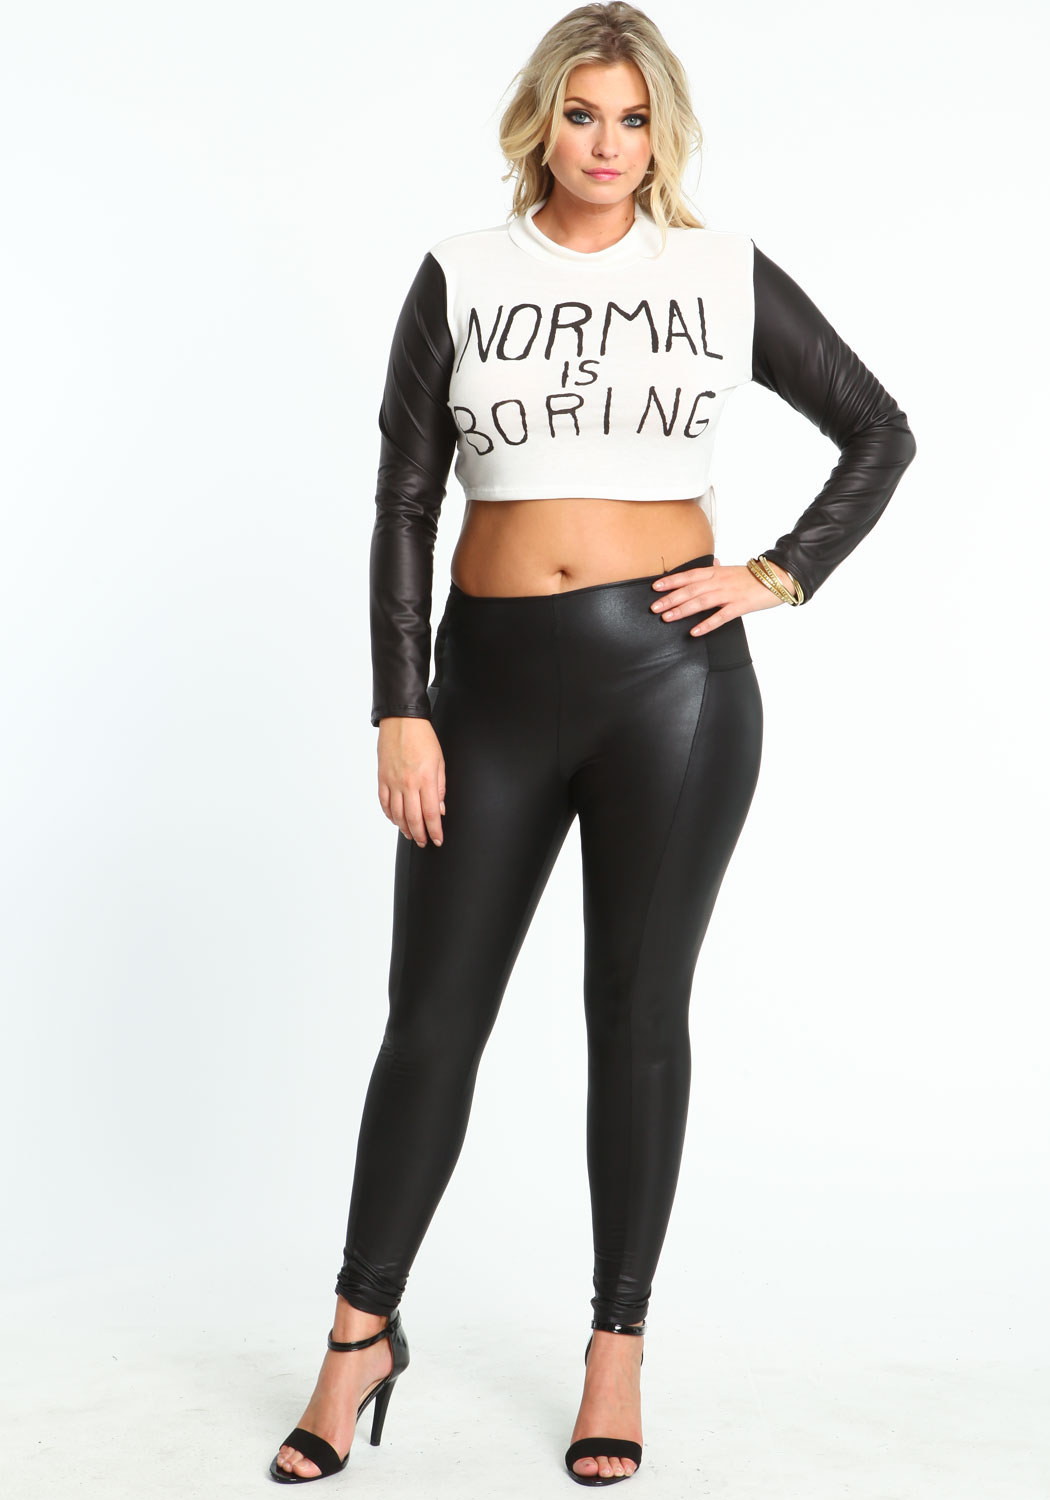 Only Leggings is proud to offer an amazing collection of women's plus size leggings from faux leather to wonderful plus size cotton leggings at fabulous prices.